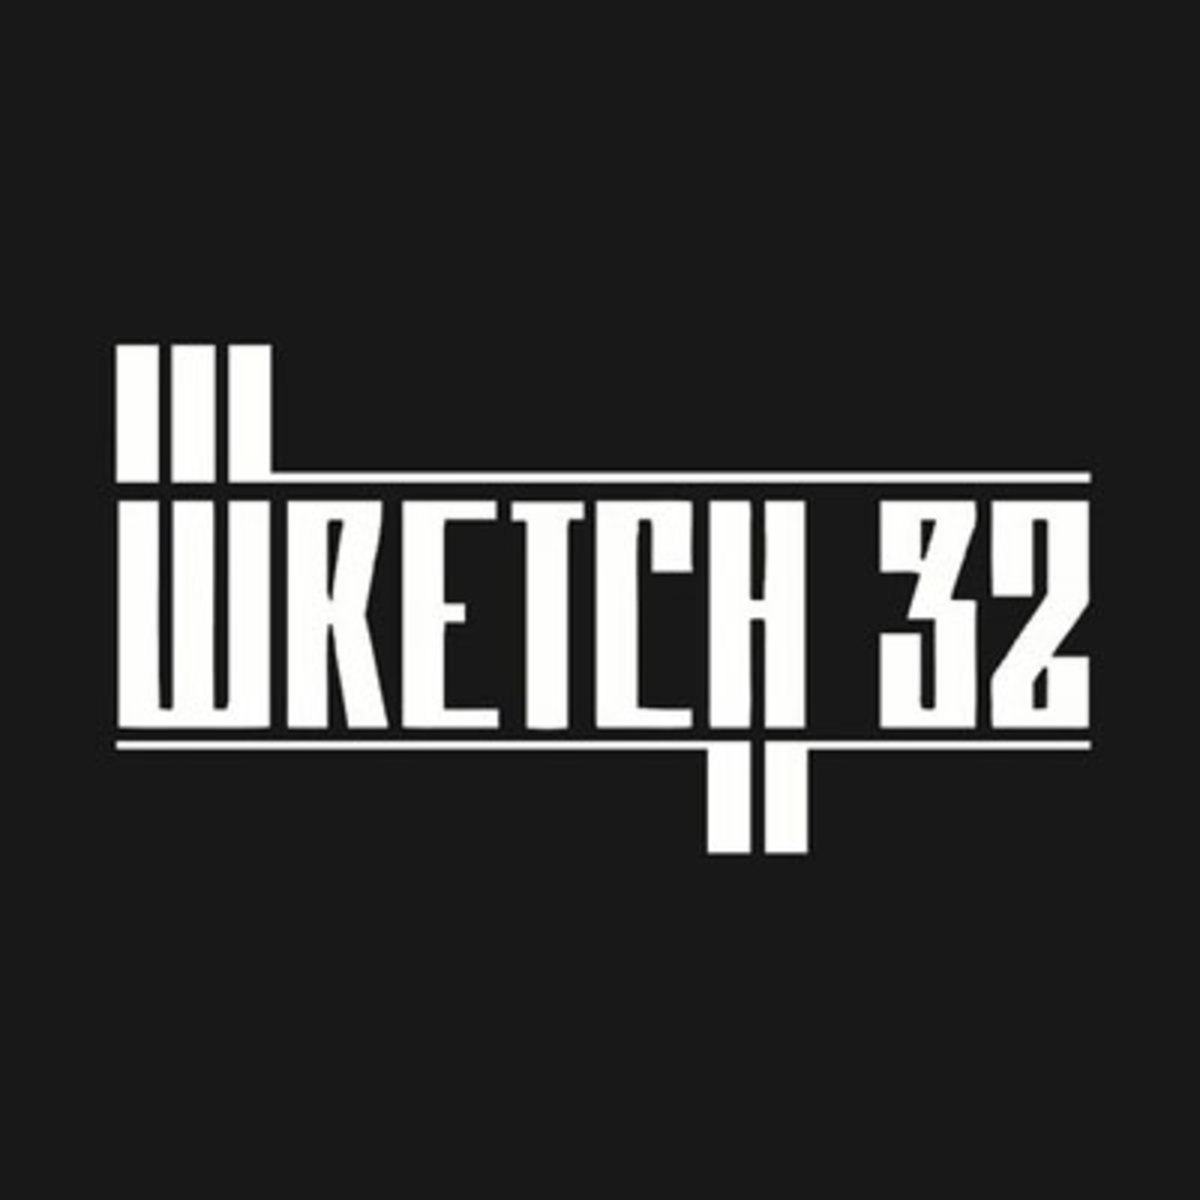 wretch32-blackout.jpg